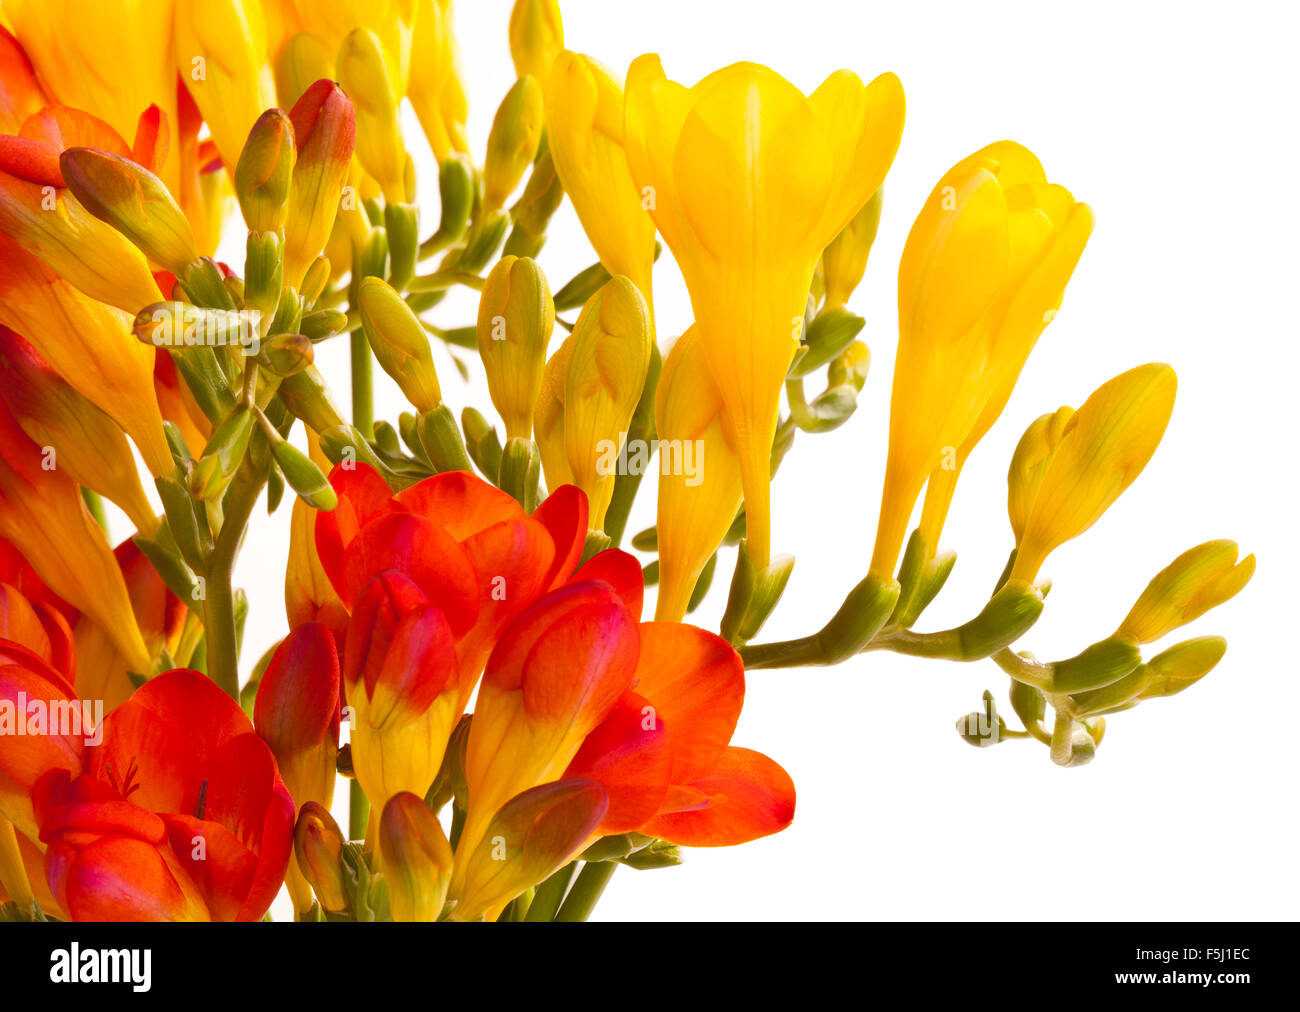 Orange and yellow Freesia flowers on a white back ground - Stock Image